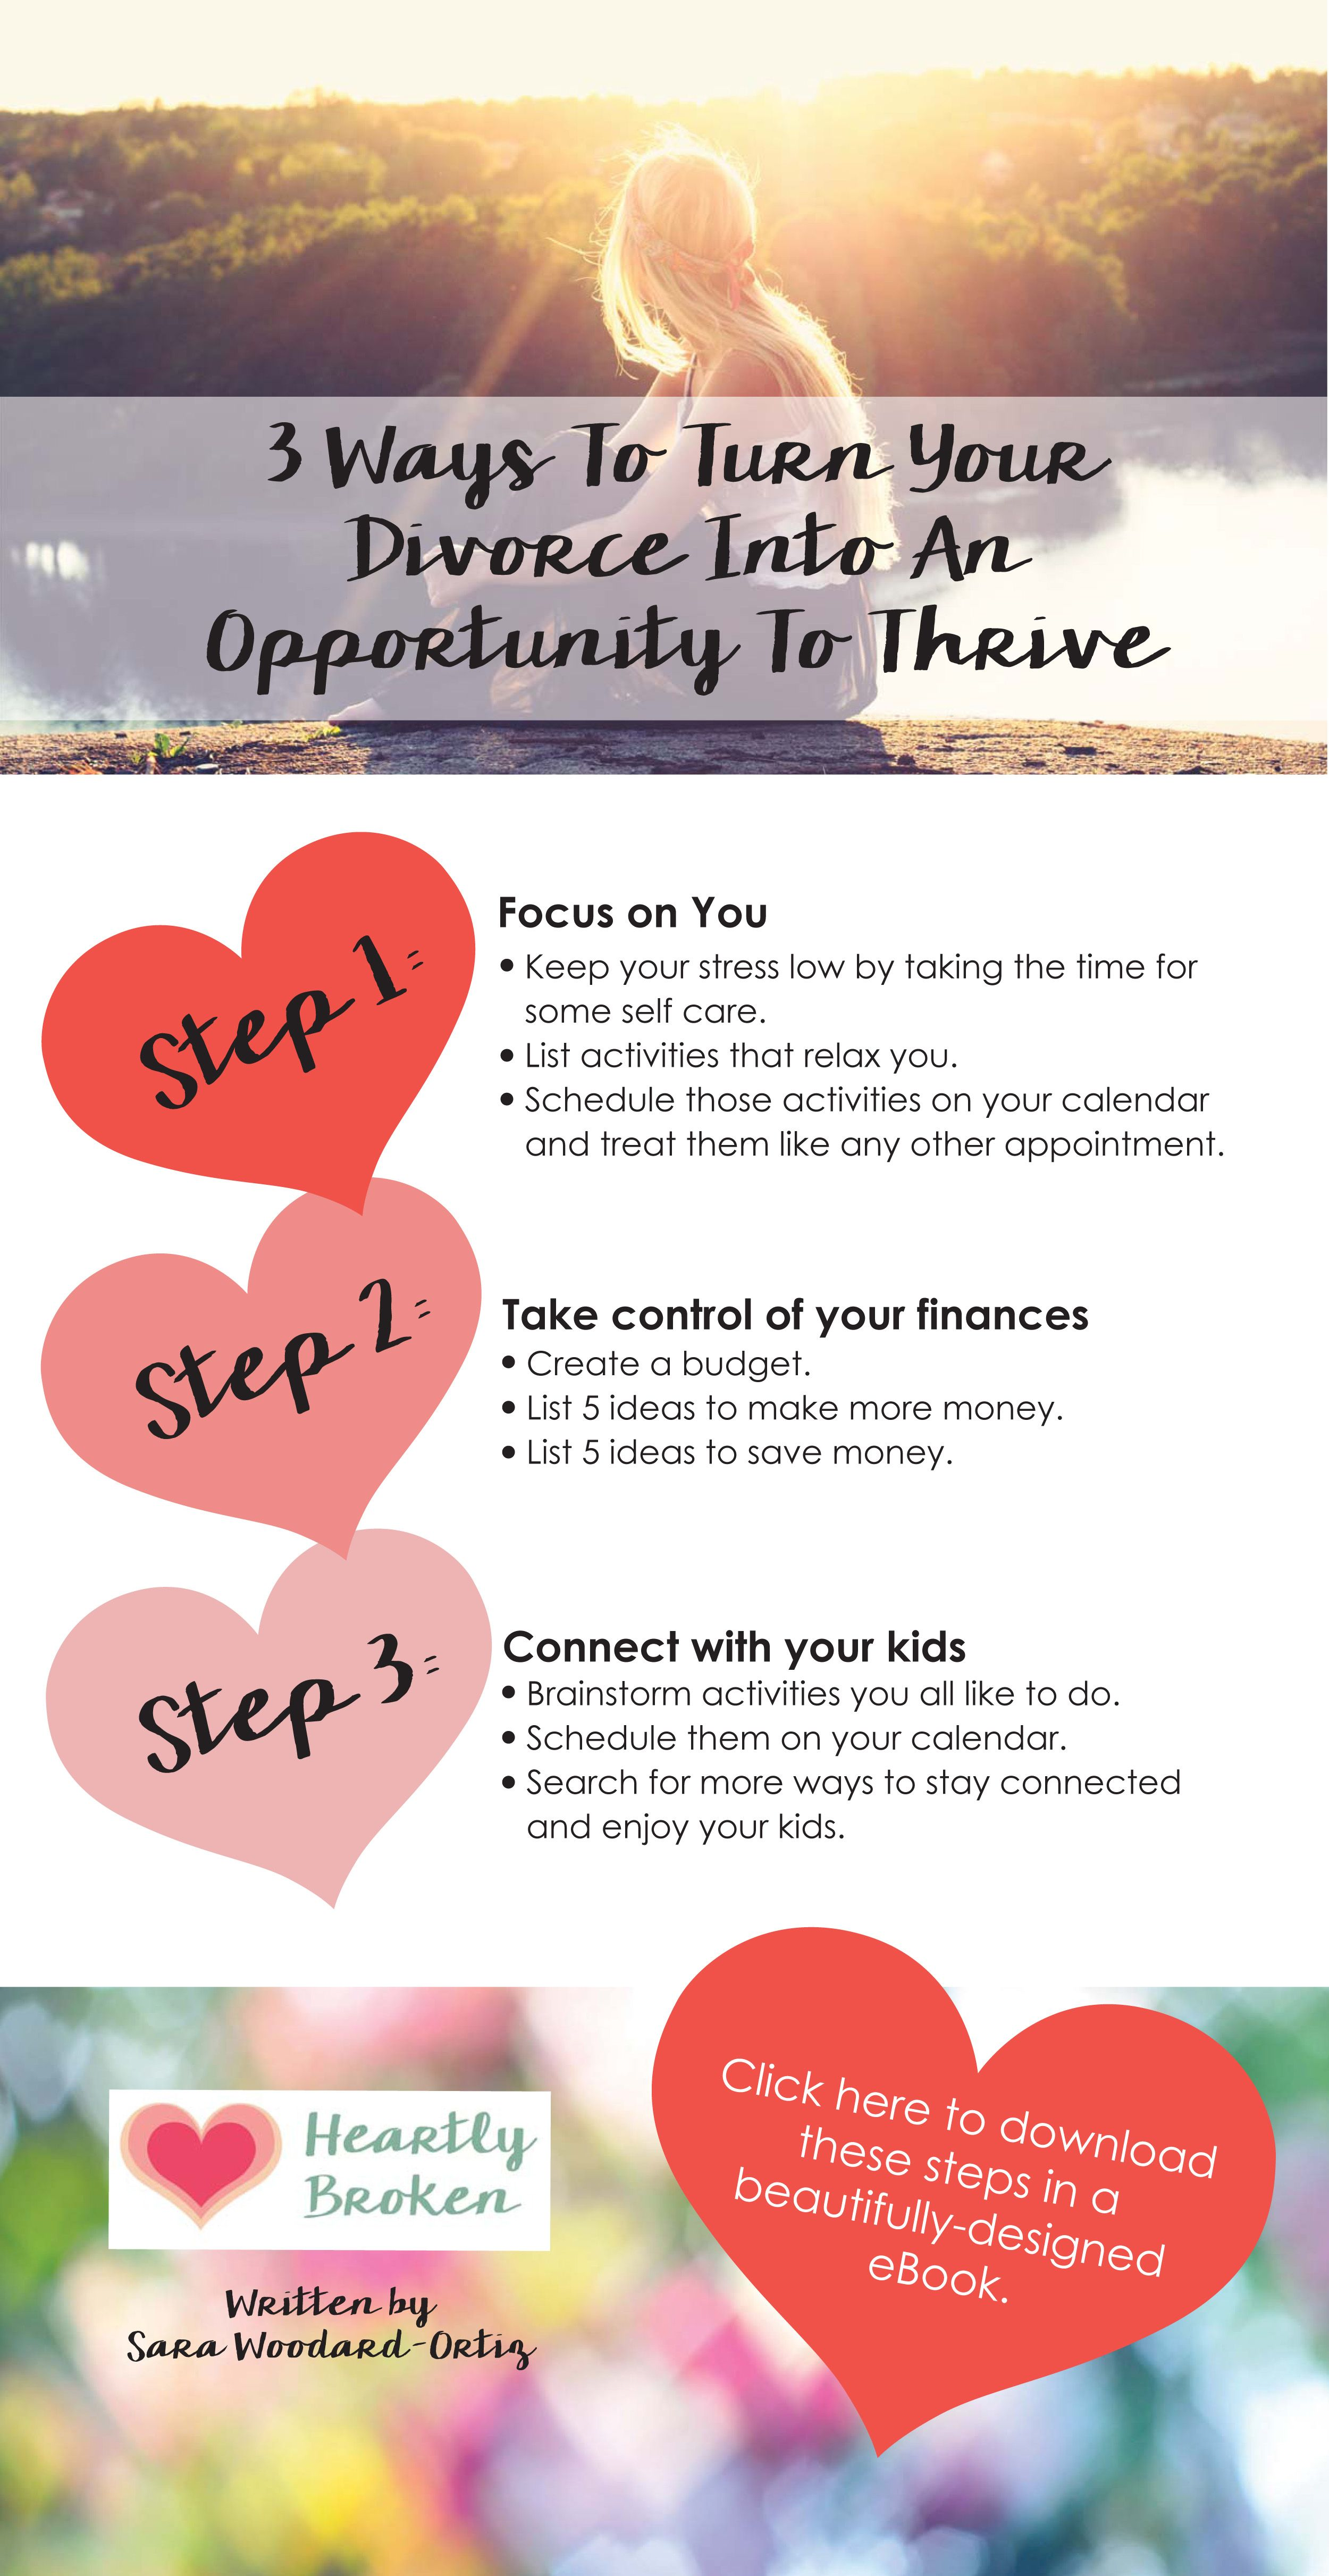 5 ways you can make your divorce easier for your children 5 ways you can make your divorce easier for your children new pics